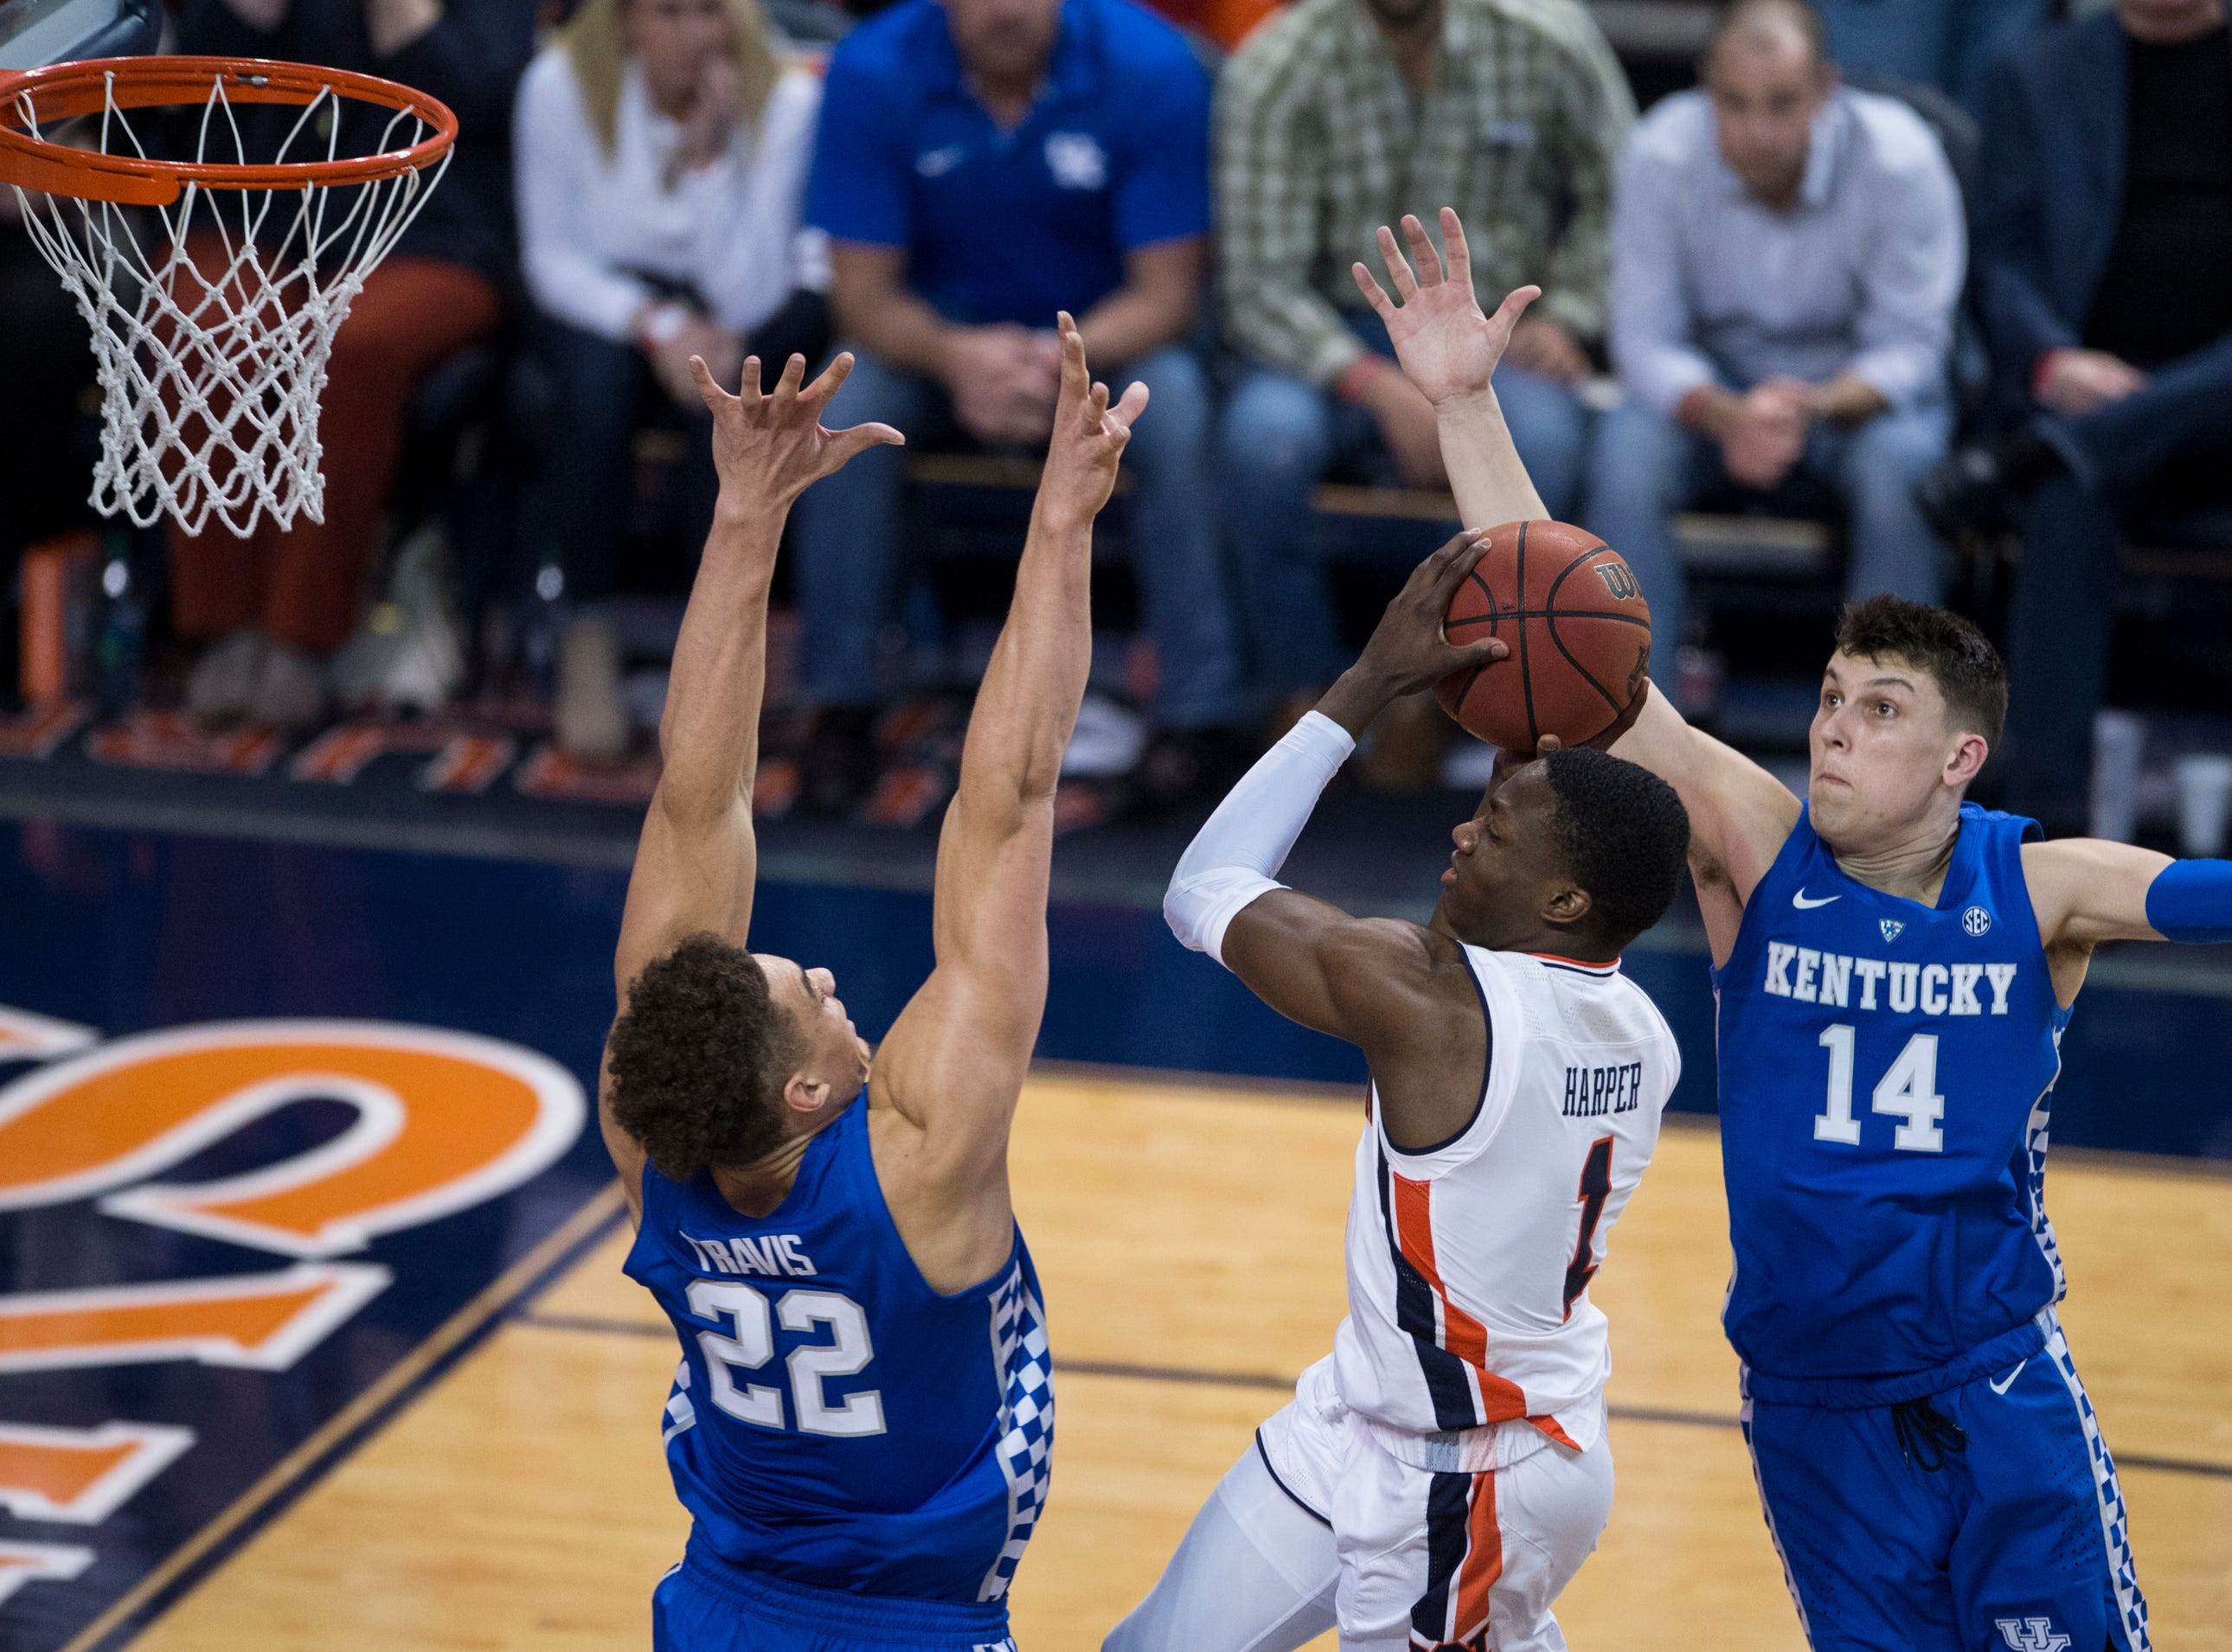 Auburn guard Jared Harper (1) goes up for a layup over Kentucky forward Reid Travis (22) at Auburn Arena in Auburn, Ala., on Saturday, Jan. 19, 2019. Kentucky defeats Auburn 82-80.